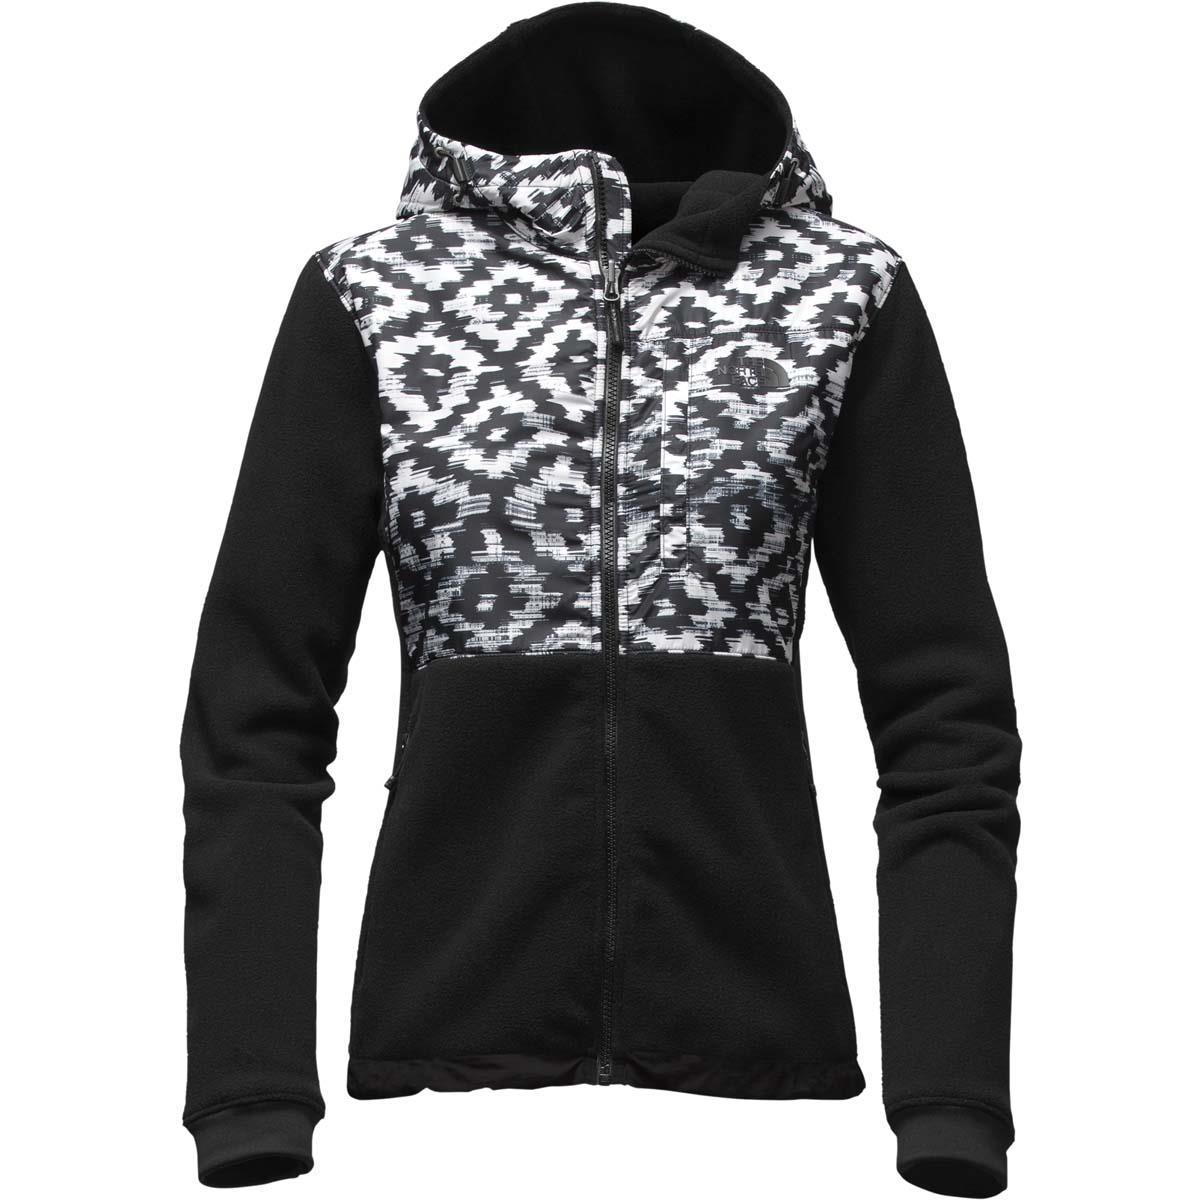 f54c24f40 The North Face Denali Hoodie - Women's